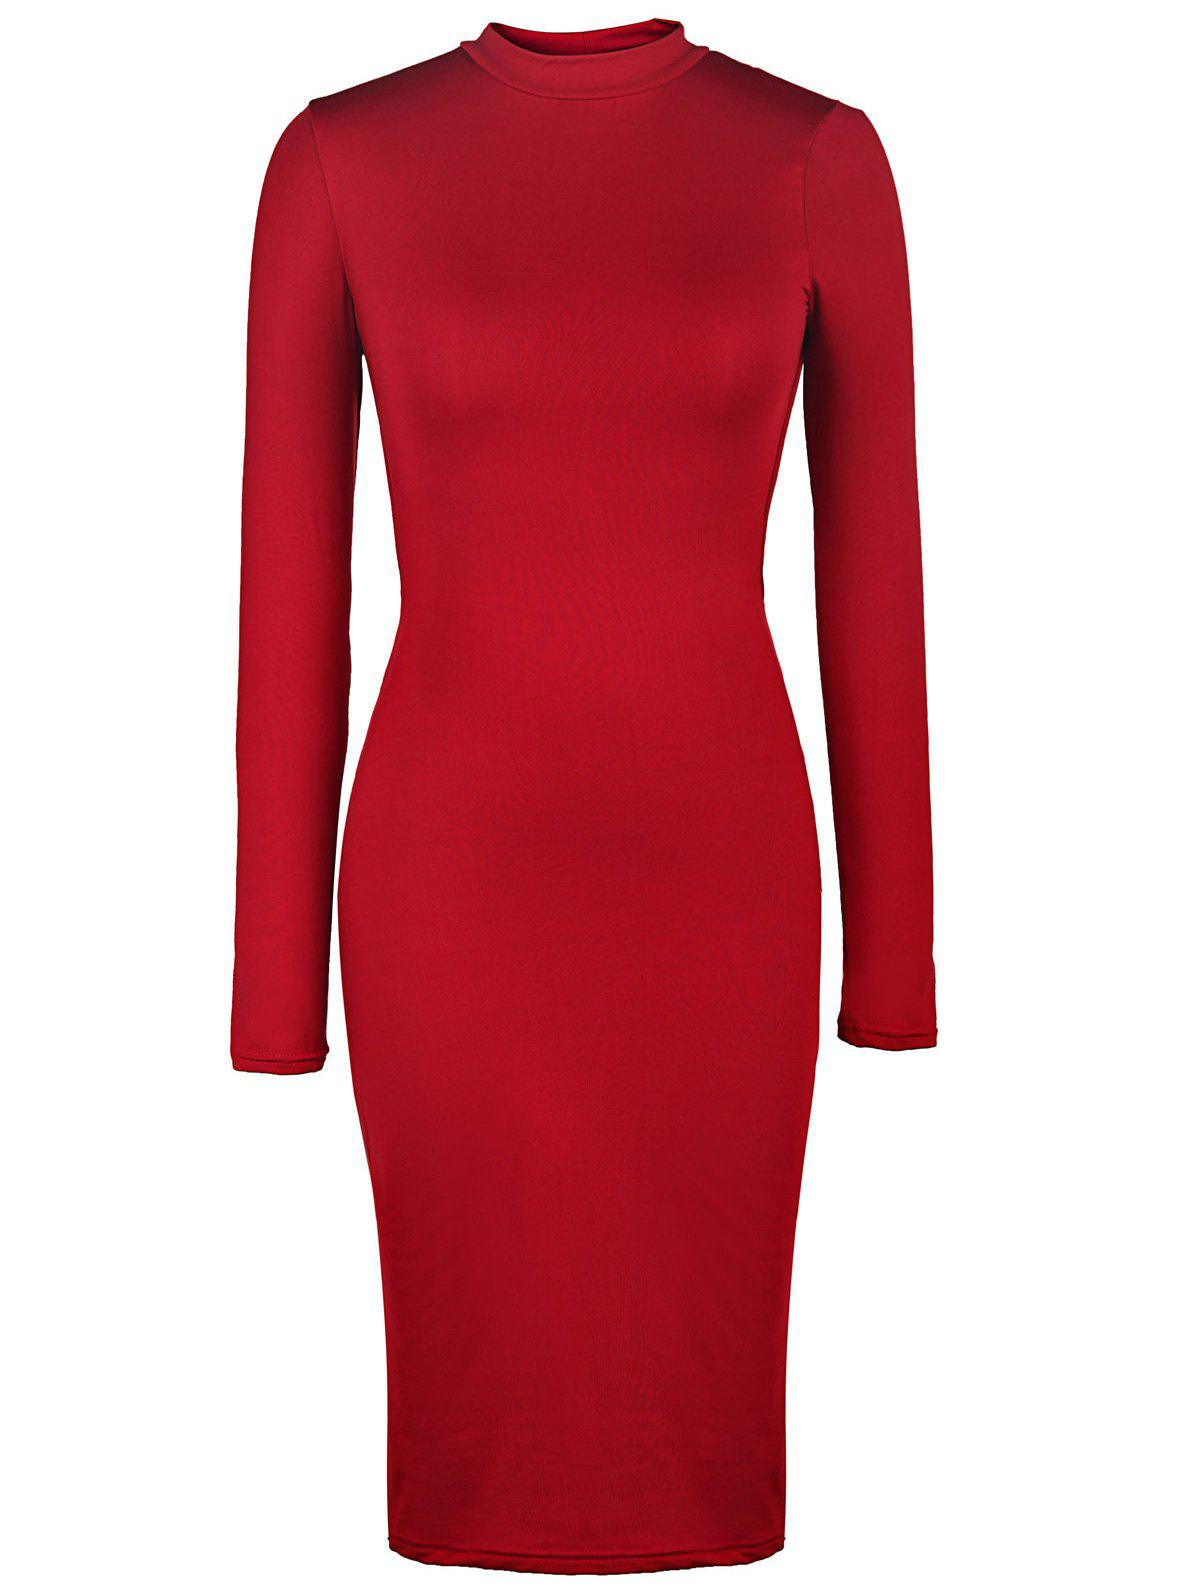 Back Cut Out Bodycon Long Sleeve Midi DressWOMEN<br><br>Size: M; Color: WINE RED; Style: Sexy &amp; Club; Material: Polyester; Silhouette: Sheath; Dresses Length: Knee-Length; Neckline: Stand; Sleeve Length: Long Sleeves; Embellishment: Hollow Out; Pattern Type: Solid; With Belt: No; Season: Fall; Weight: 0.330kg; Package Contents: 1 x Dress;